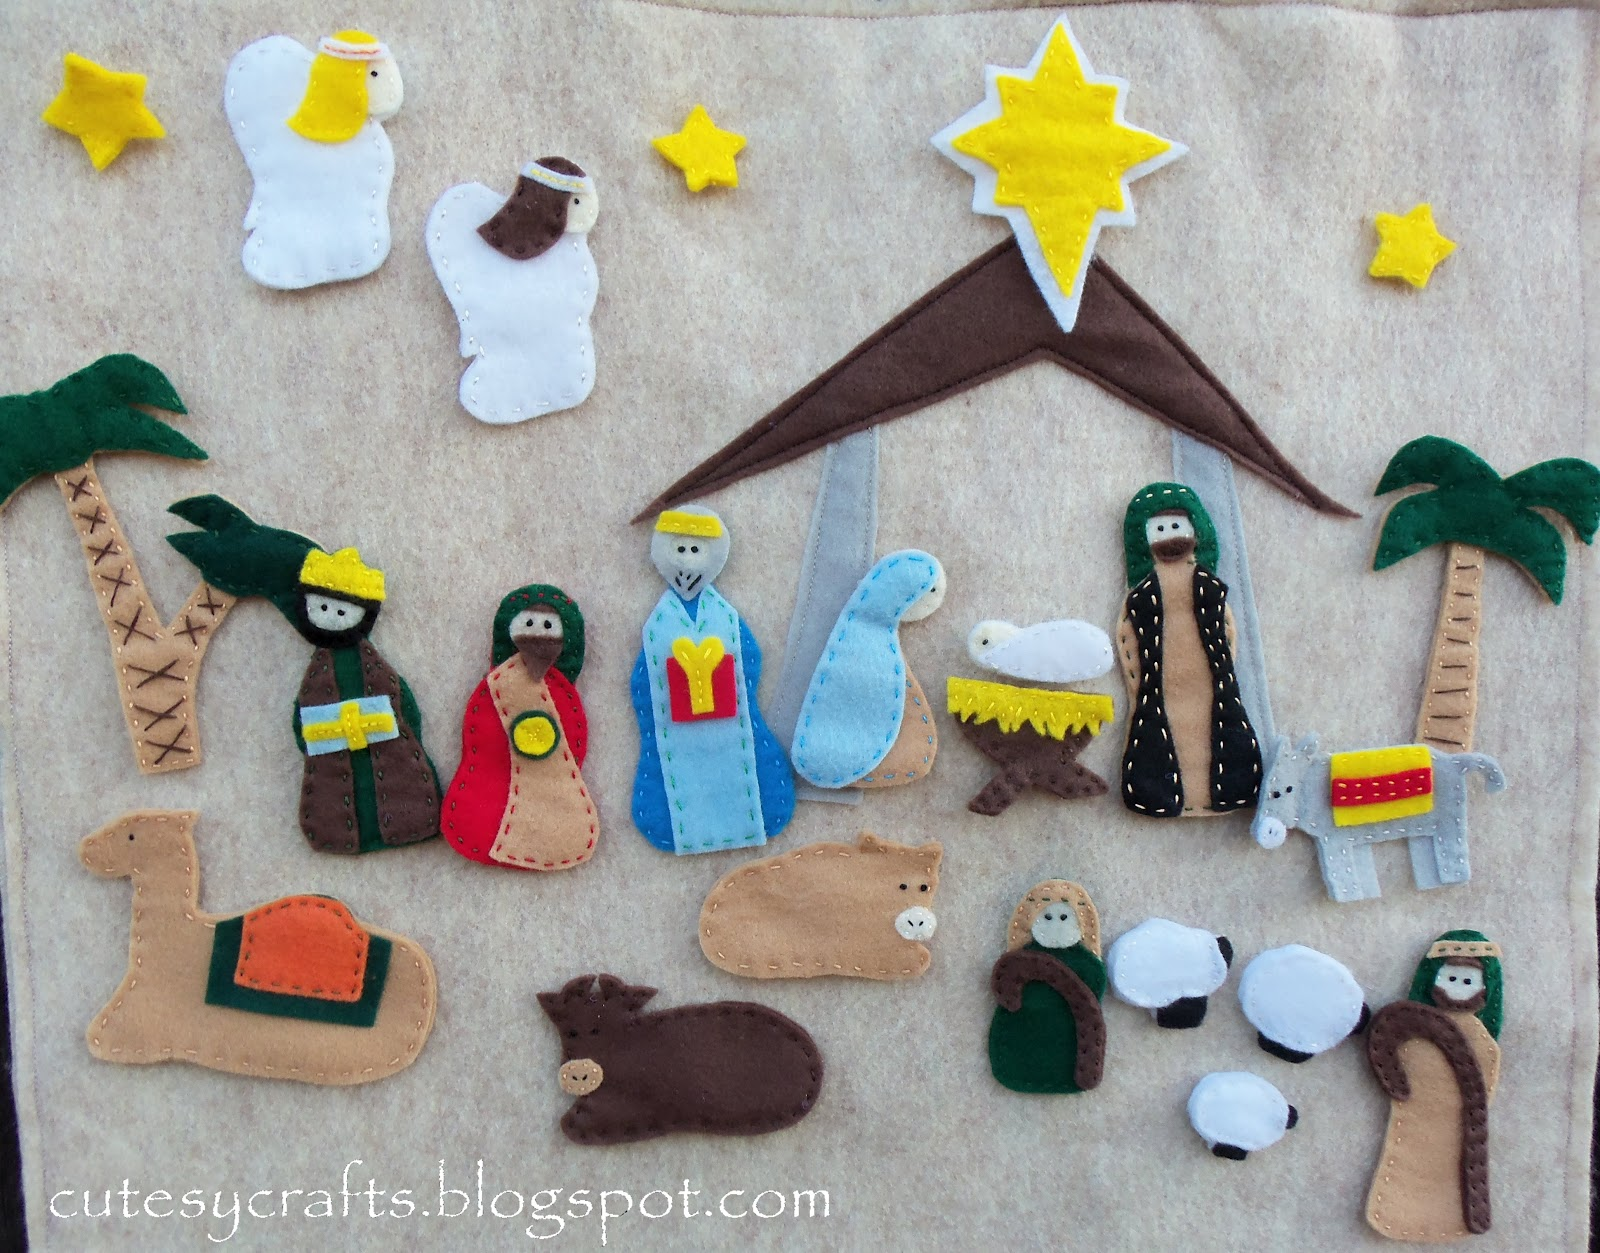 Nativity Advent Calendar Cutesy Crafts